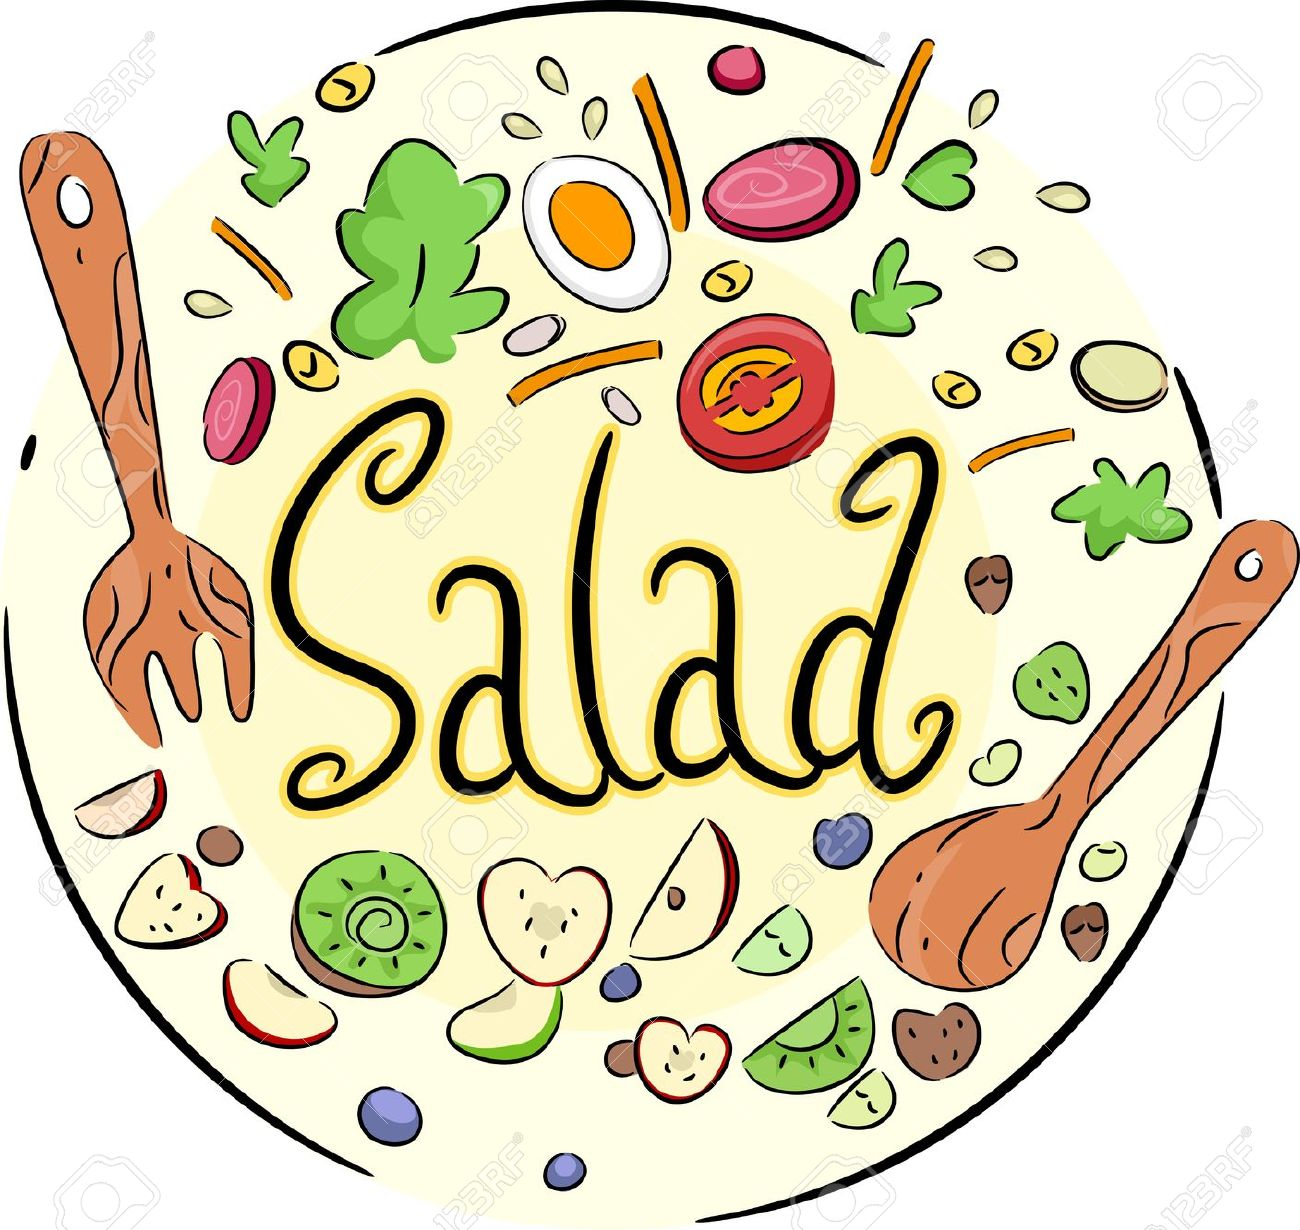 13898800-text-illustration-of-a-vegetable-salad-in-a-bowl-stock-illustration-cartoon